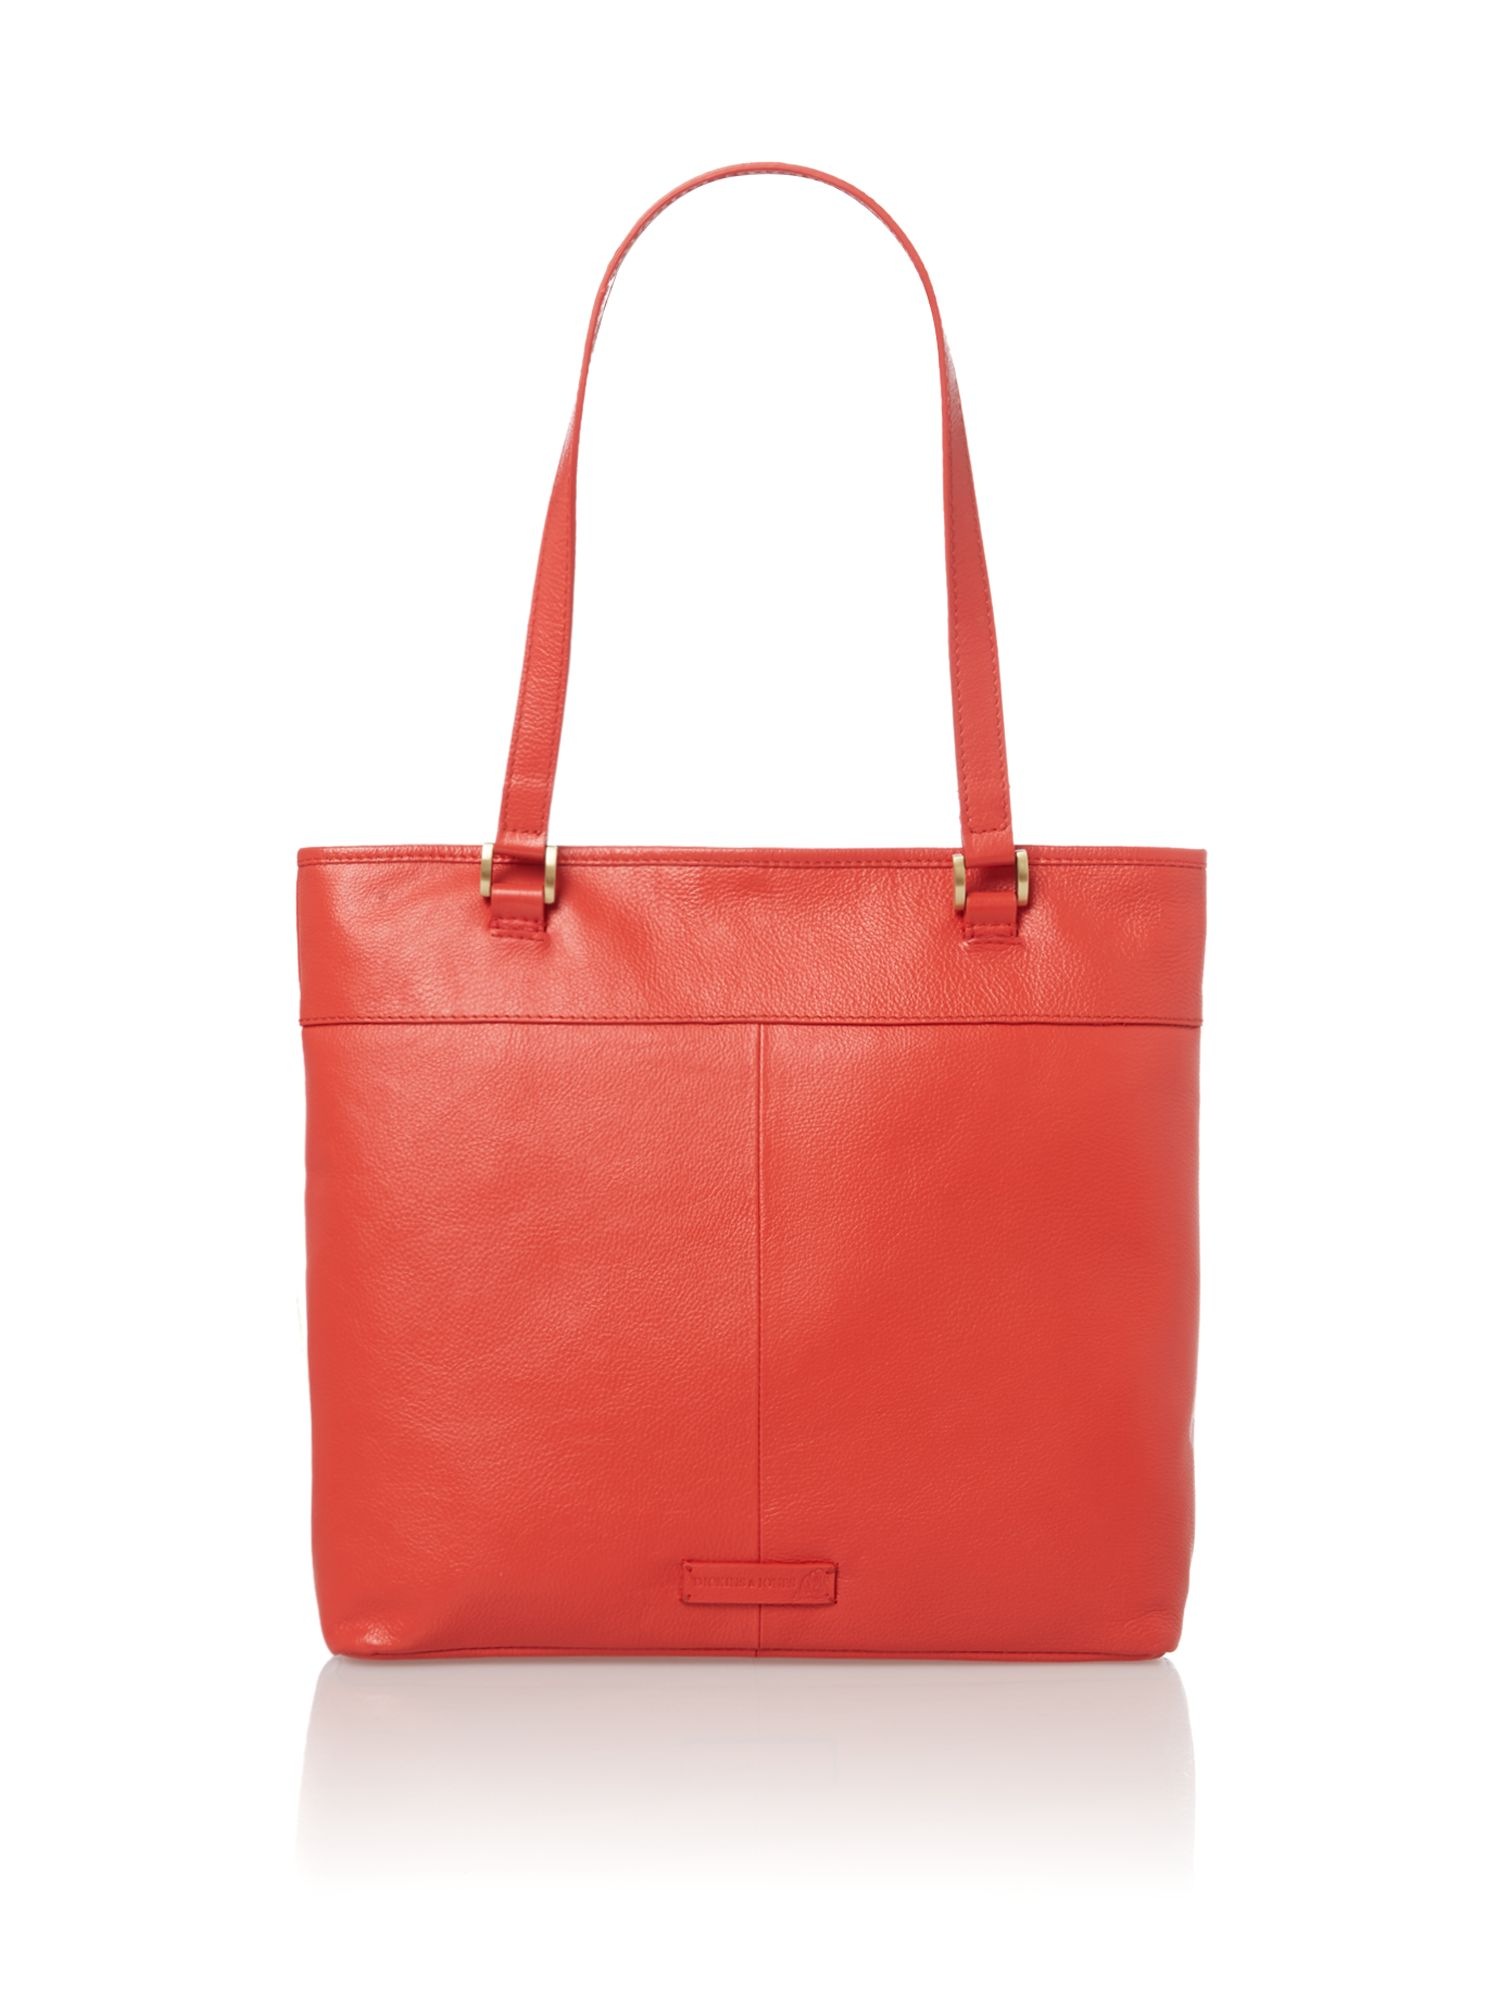 Buckingham tote bag